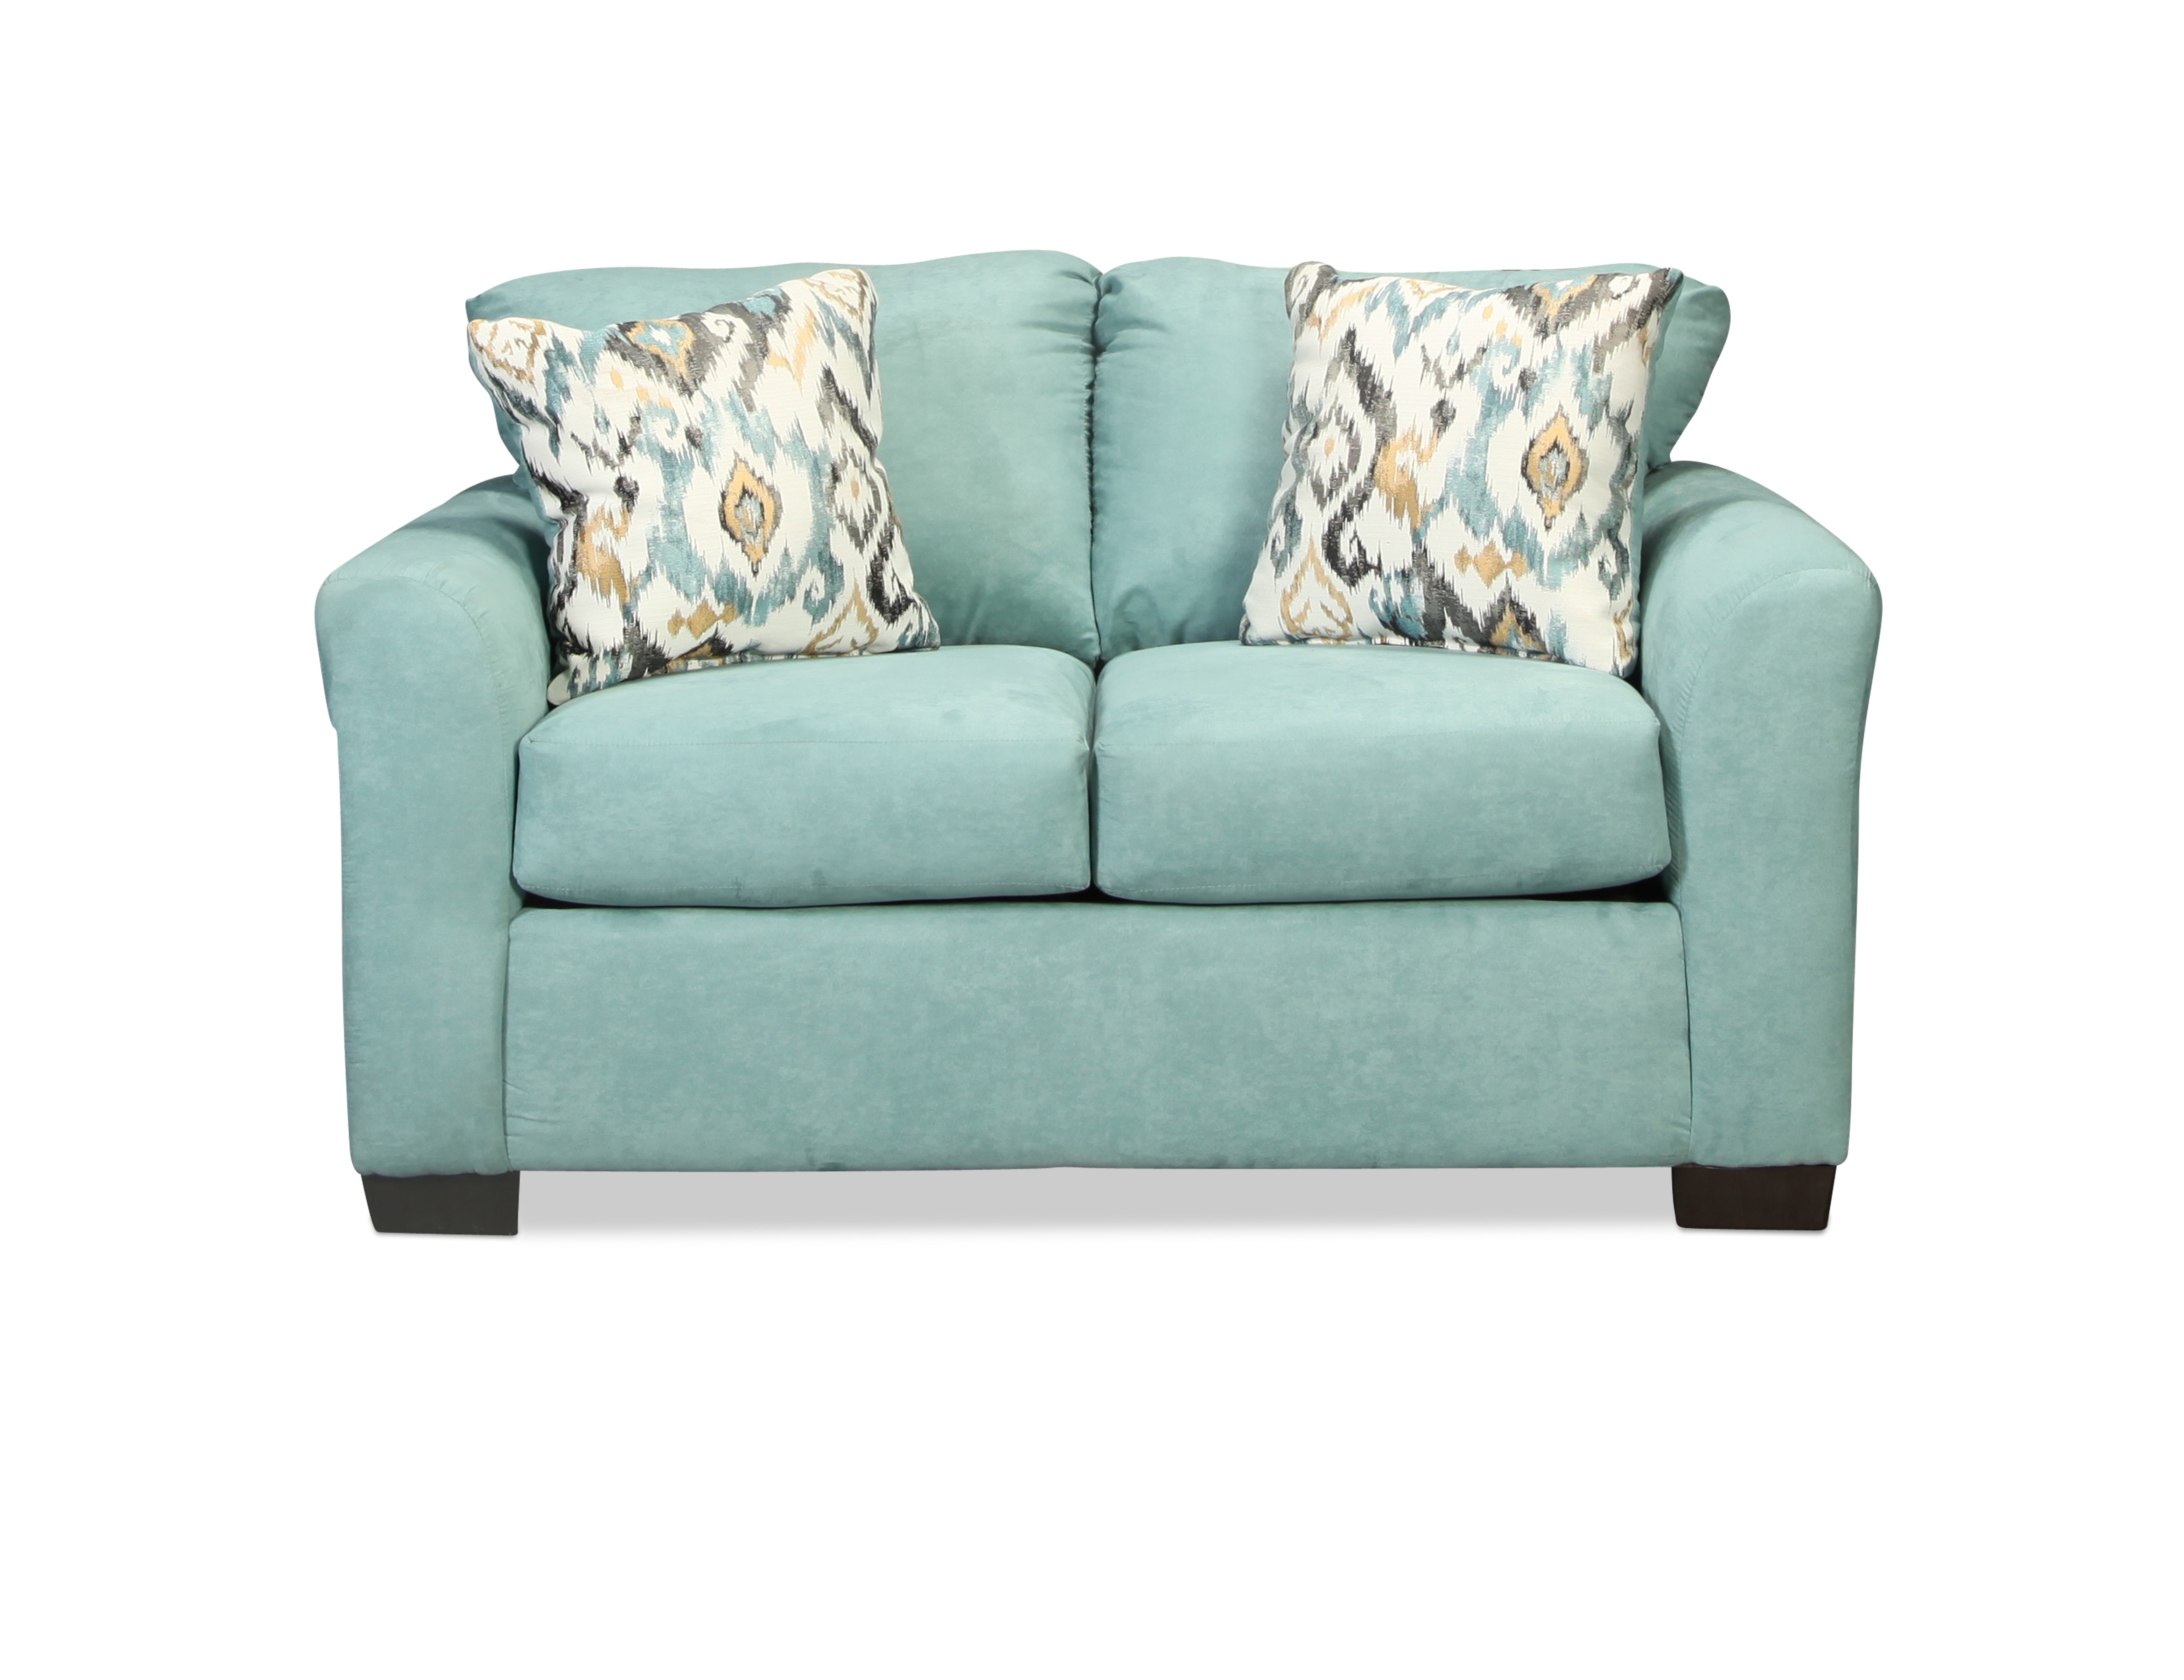 Capri Loveseat - Light Blue